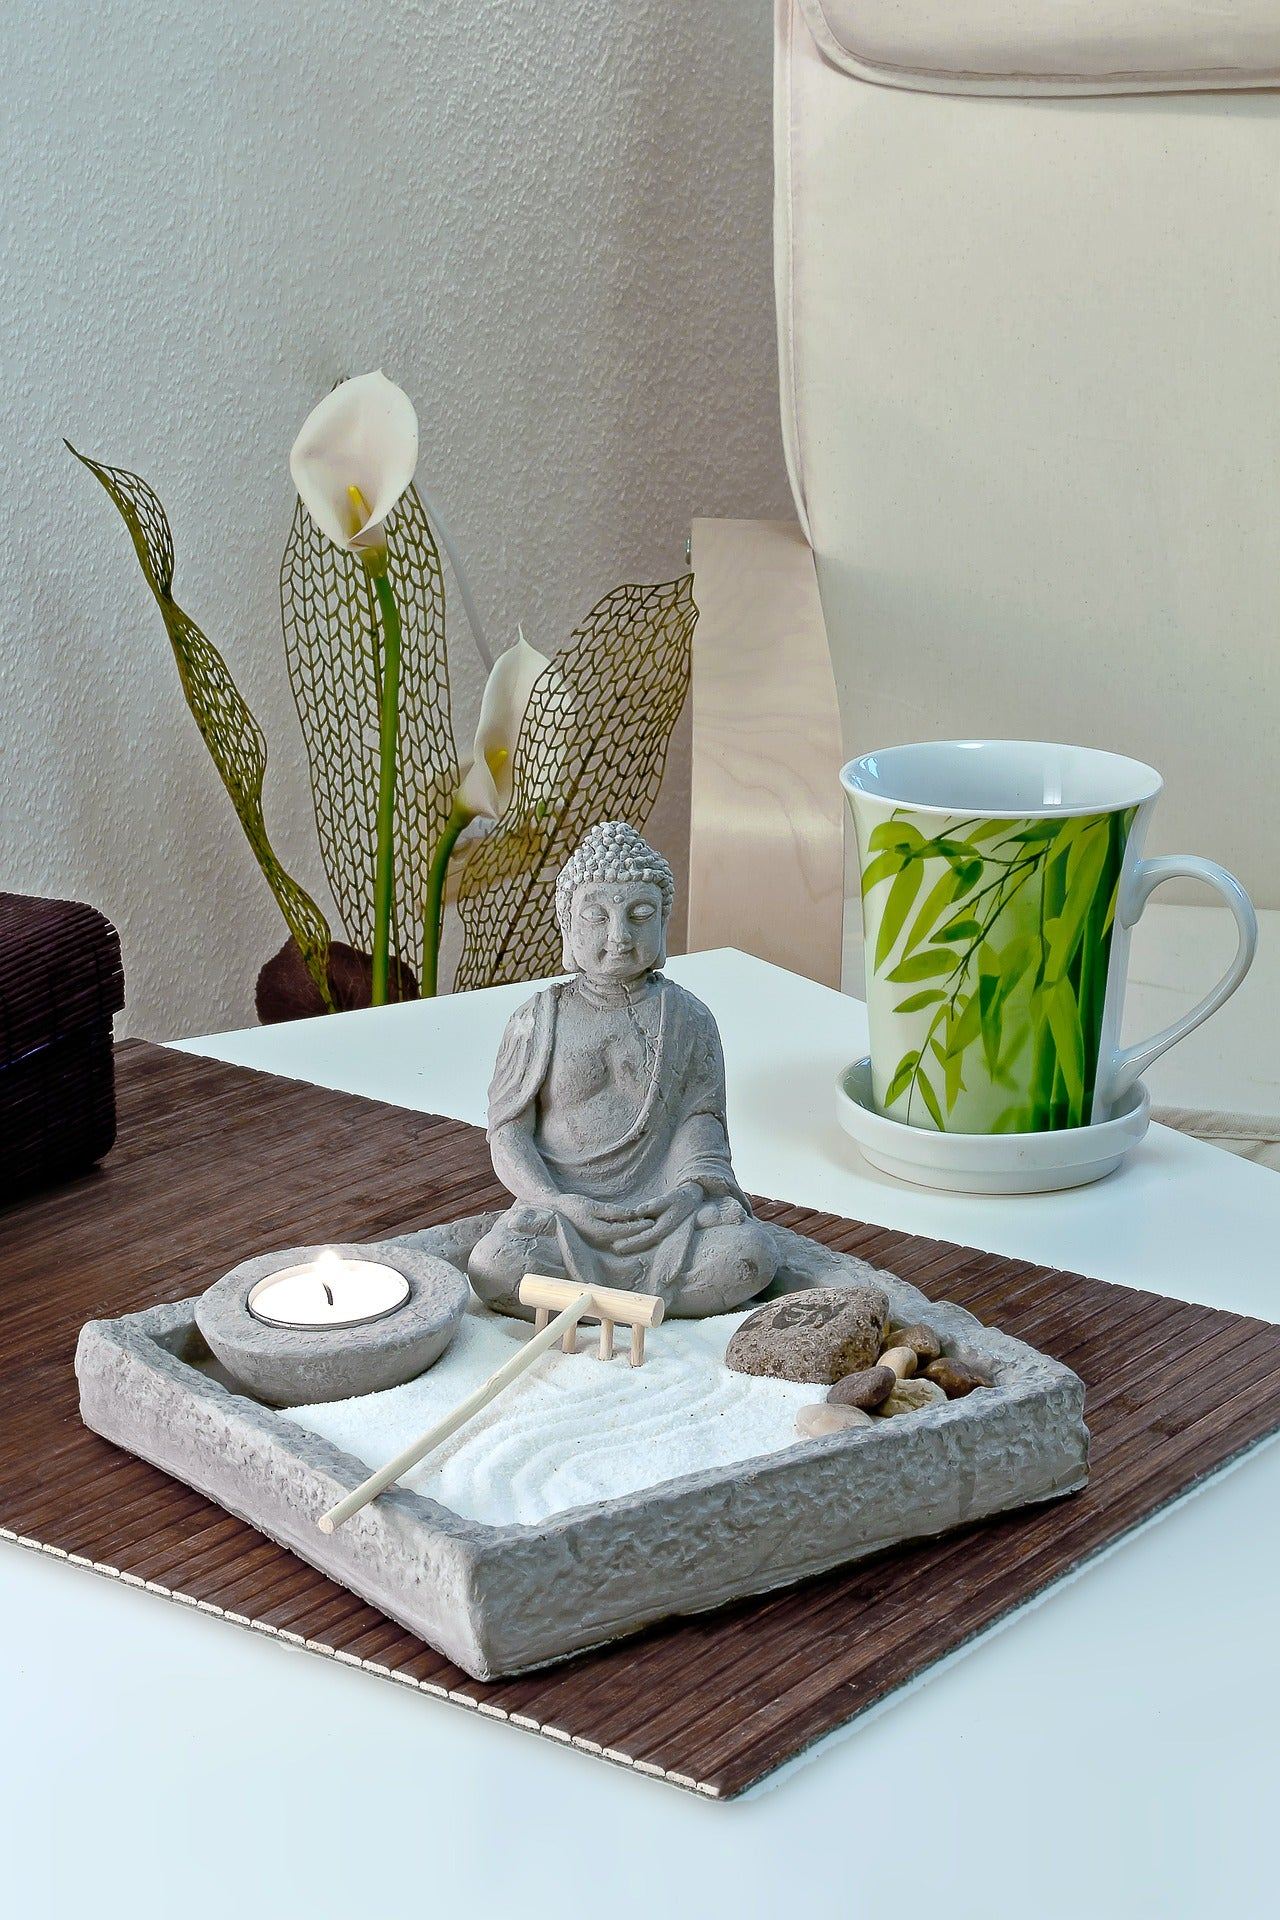 How to Decorate with Candles to Improve Your Feng Shui